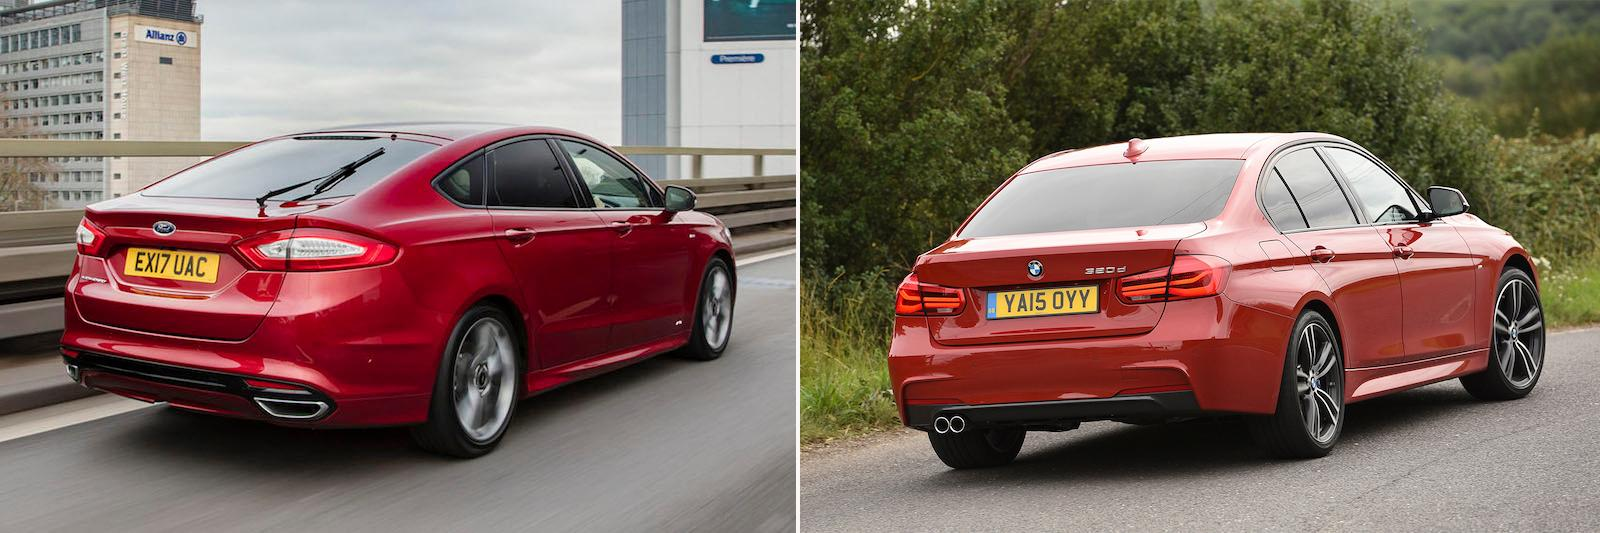 New Ford Mondeo vs used BMW 3 Series: which is best?